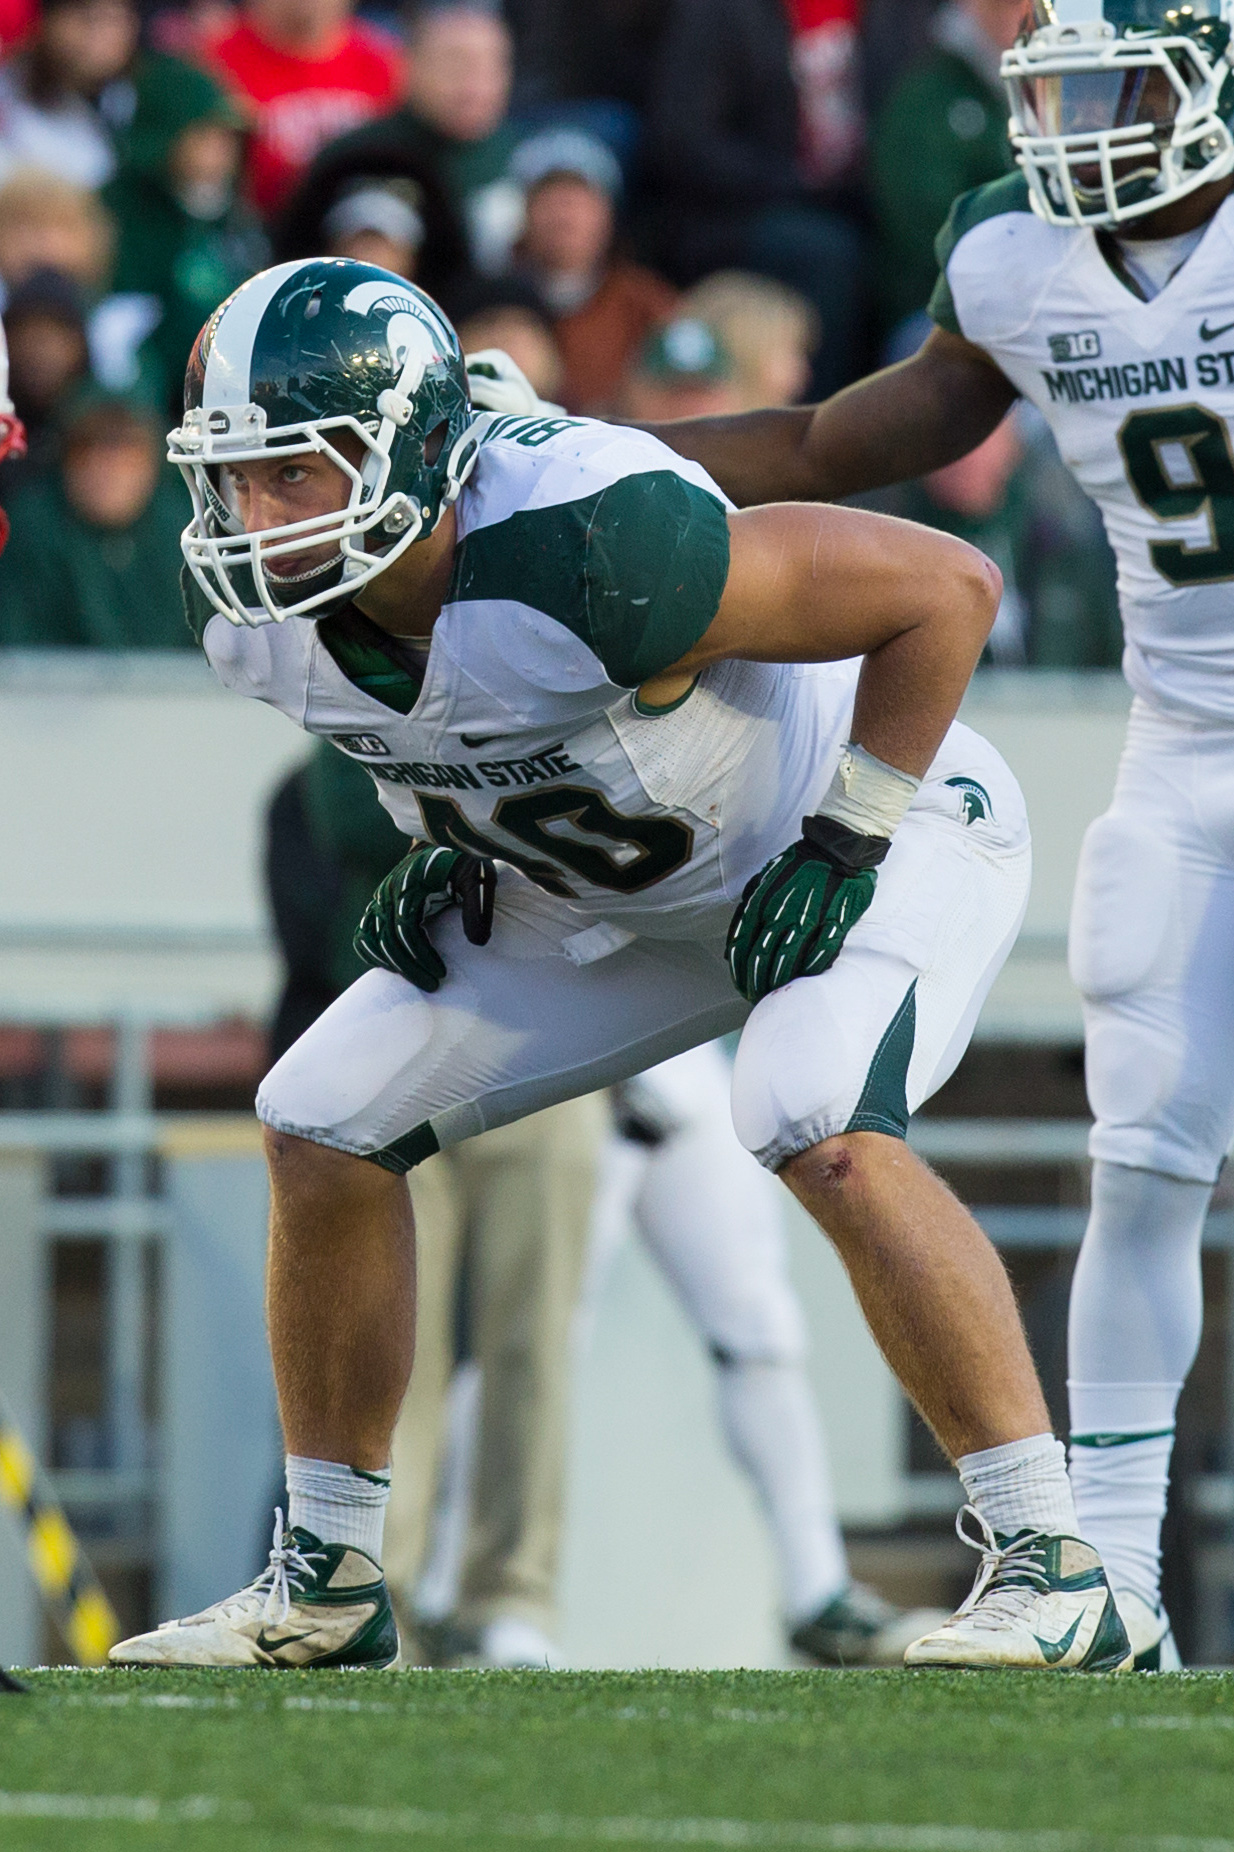 The Bullough name has been a part of Spartan football for many years, with Max as a third-generation player at Michigan State. Bullough (6-foot-3, 250 pounds) was the leading tackler on his team with 112 tackles in 2012. He is very good at taking on blockers and anticipating plays. Bullough -- who runs the 40-yard dash in 4.8 seconds -- has started 27 consecutive games. (Mandatory Credit: Jeff Hanisch-US PRESSWIRE)